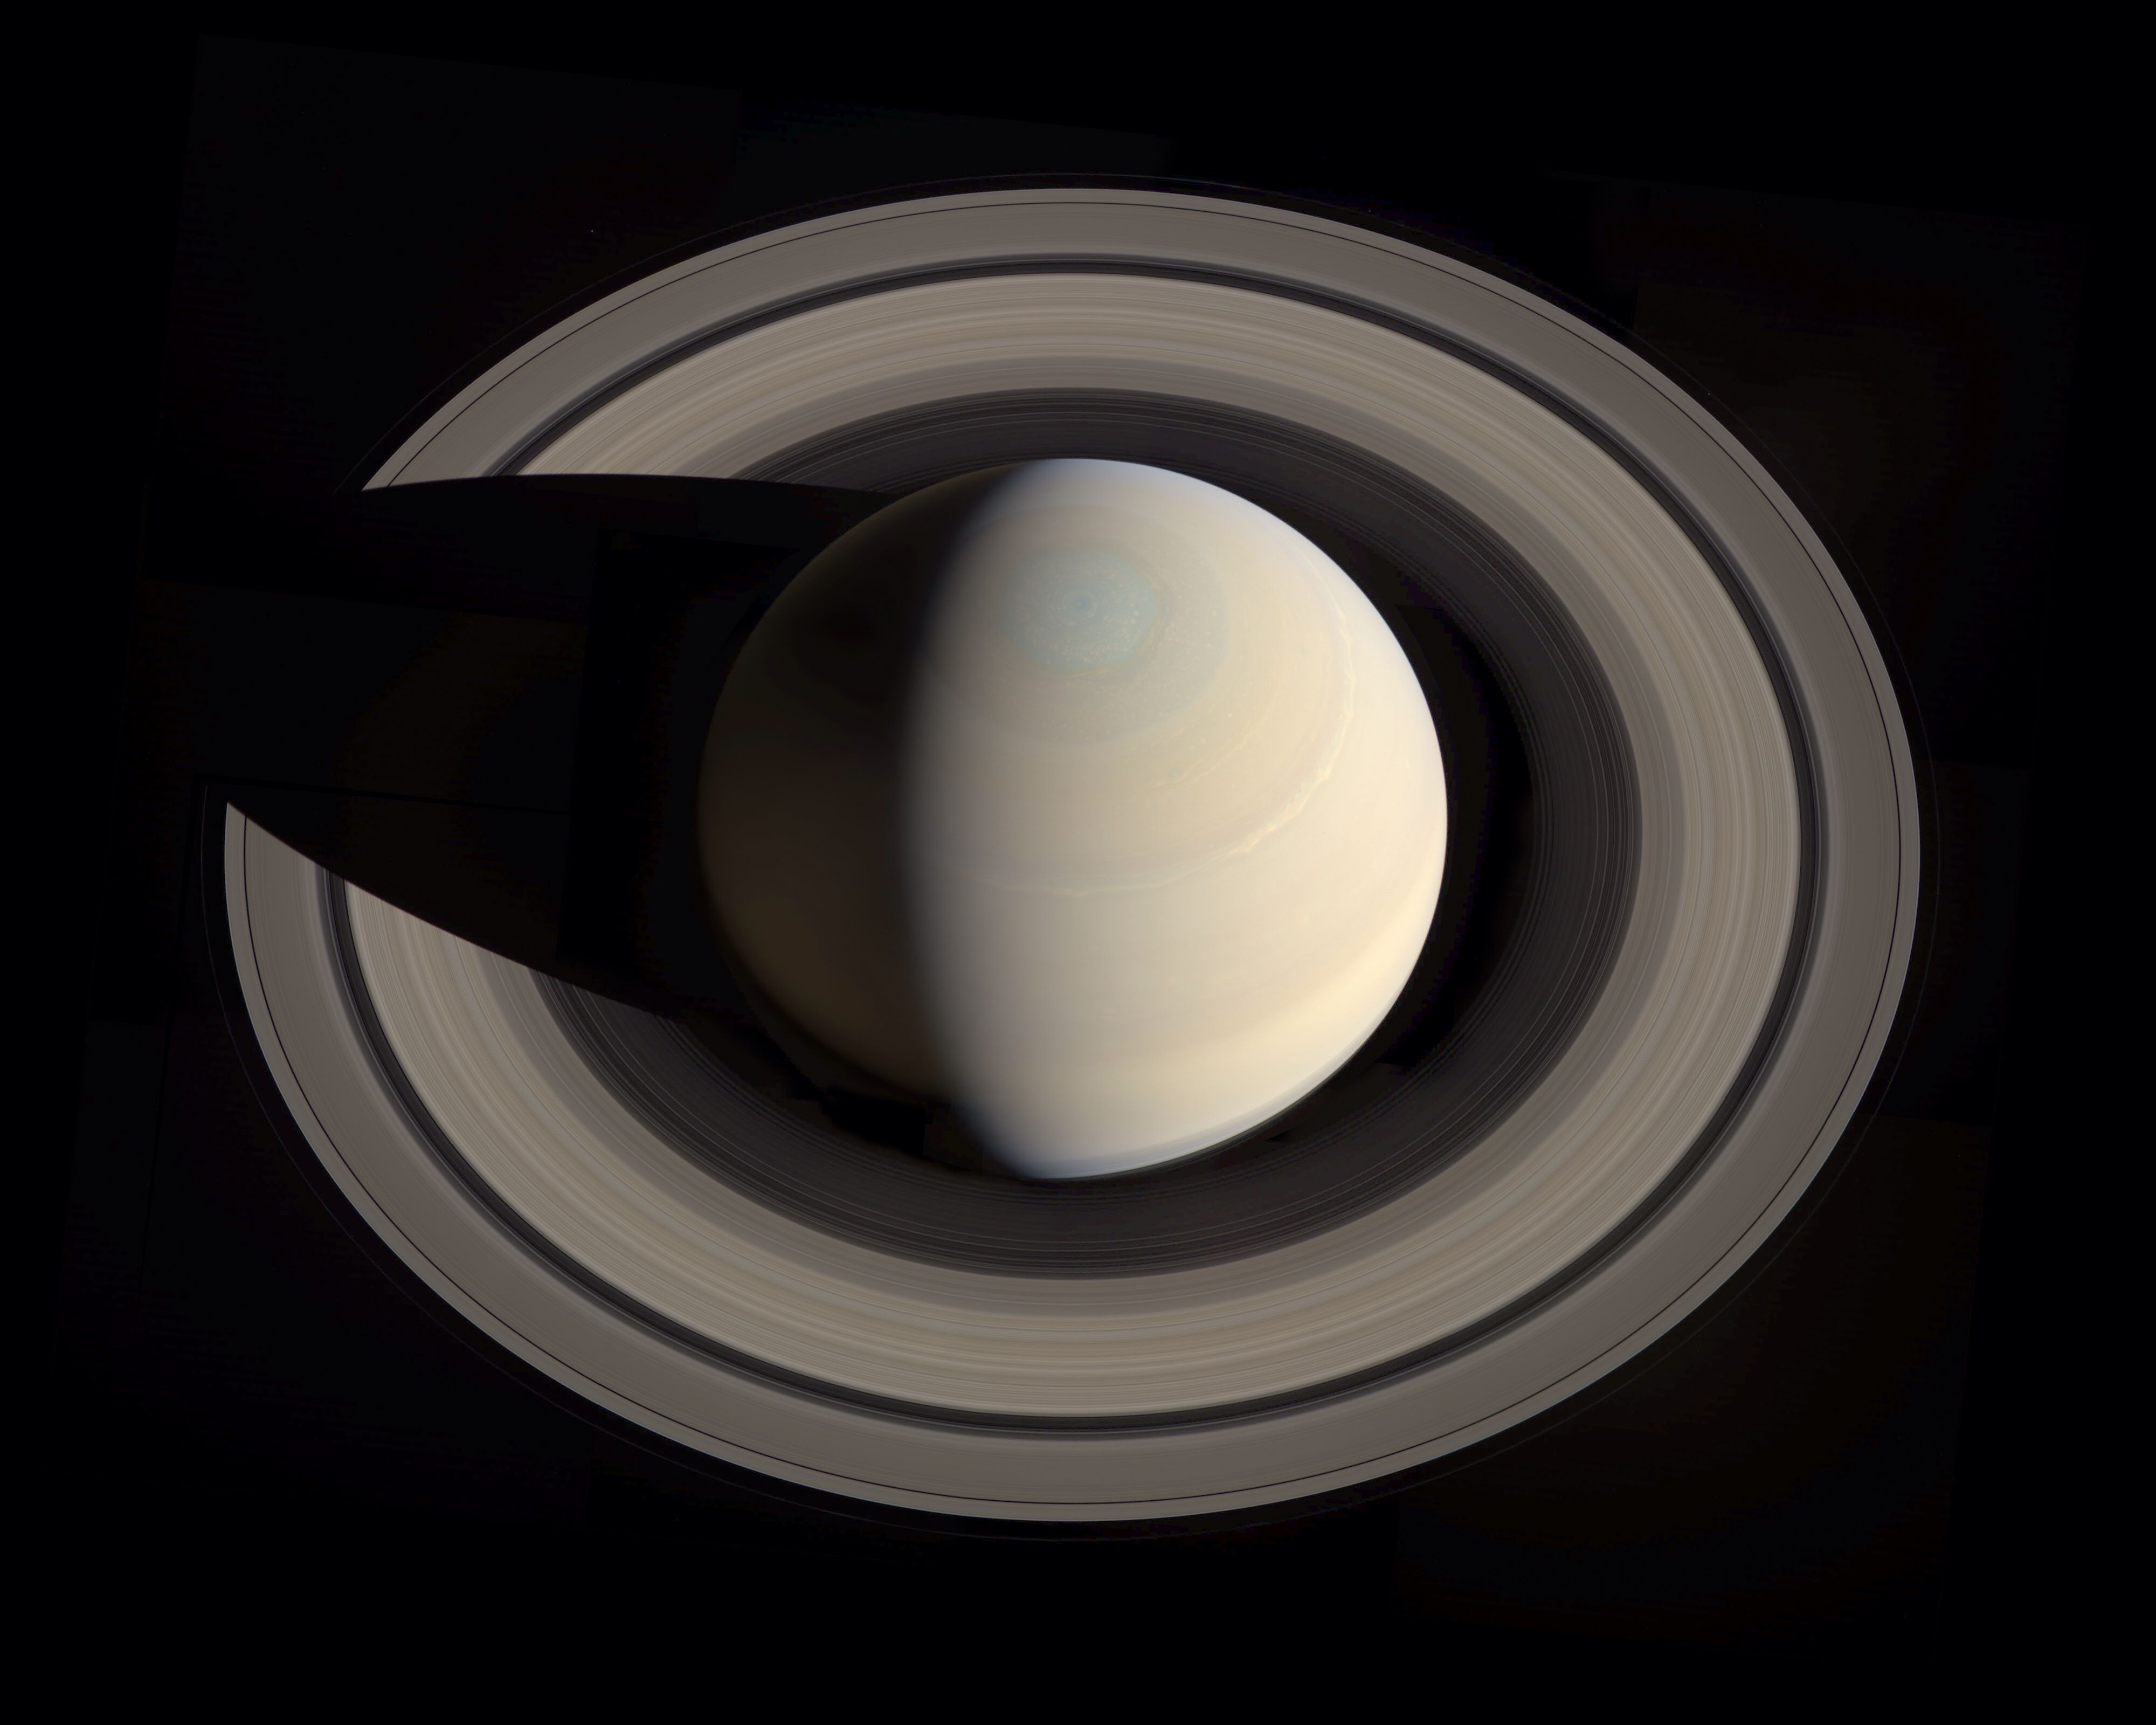 Latest pics of Saturn are AWESOME! | Cool | Pinterest